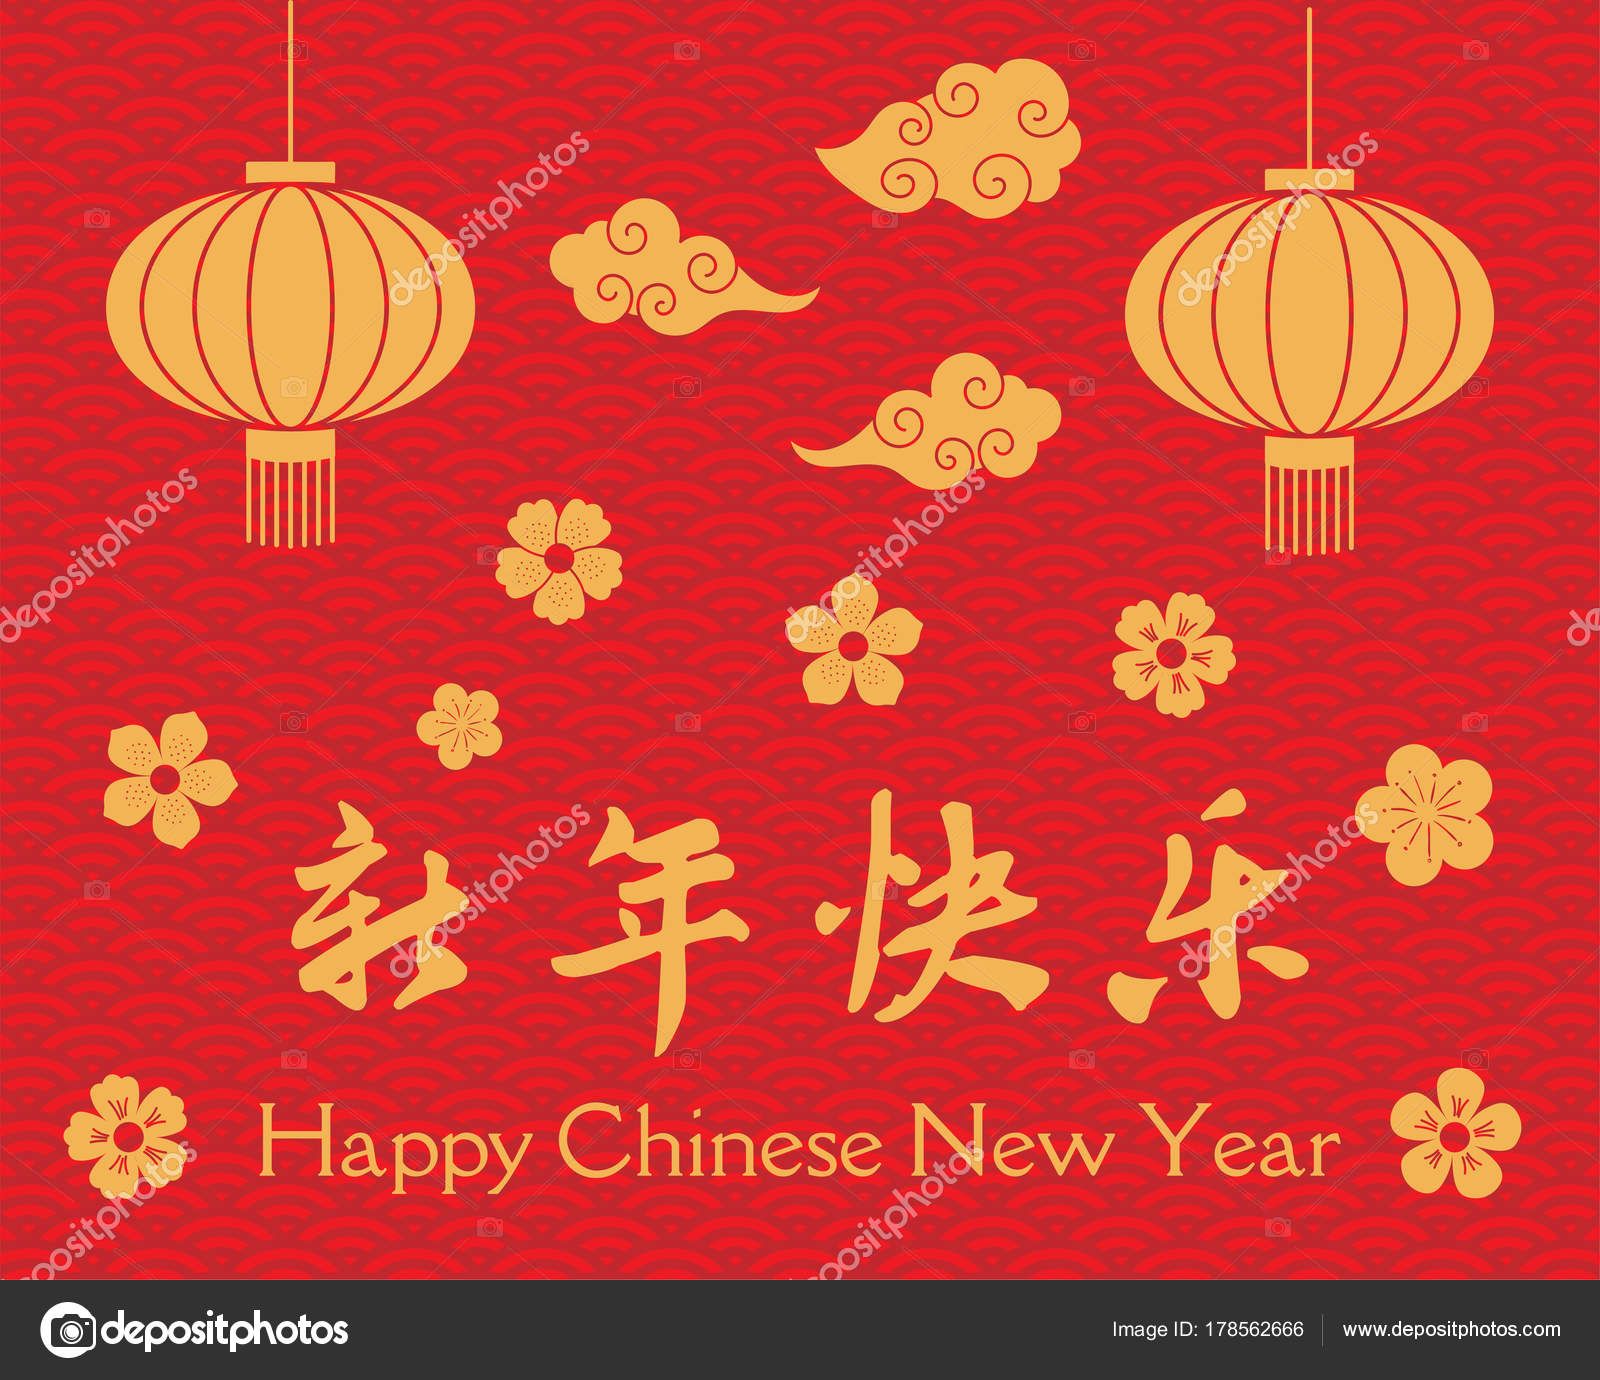 2018 Chinese New Year Greeting Card Lanterns Clouds Flowers Vector